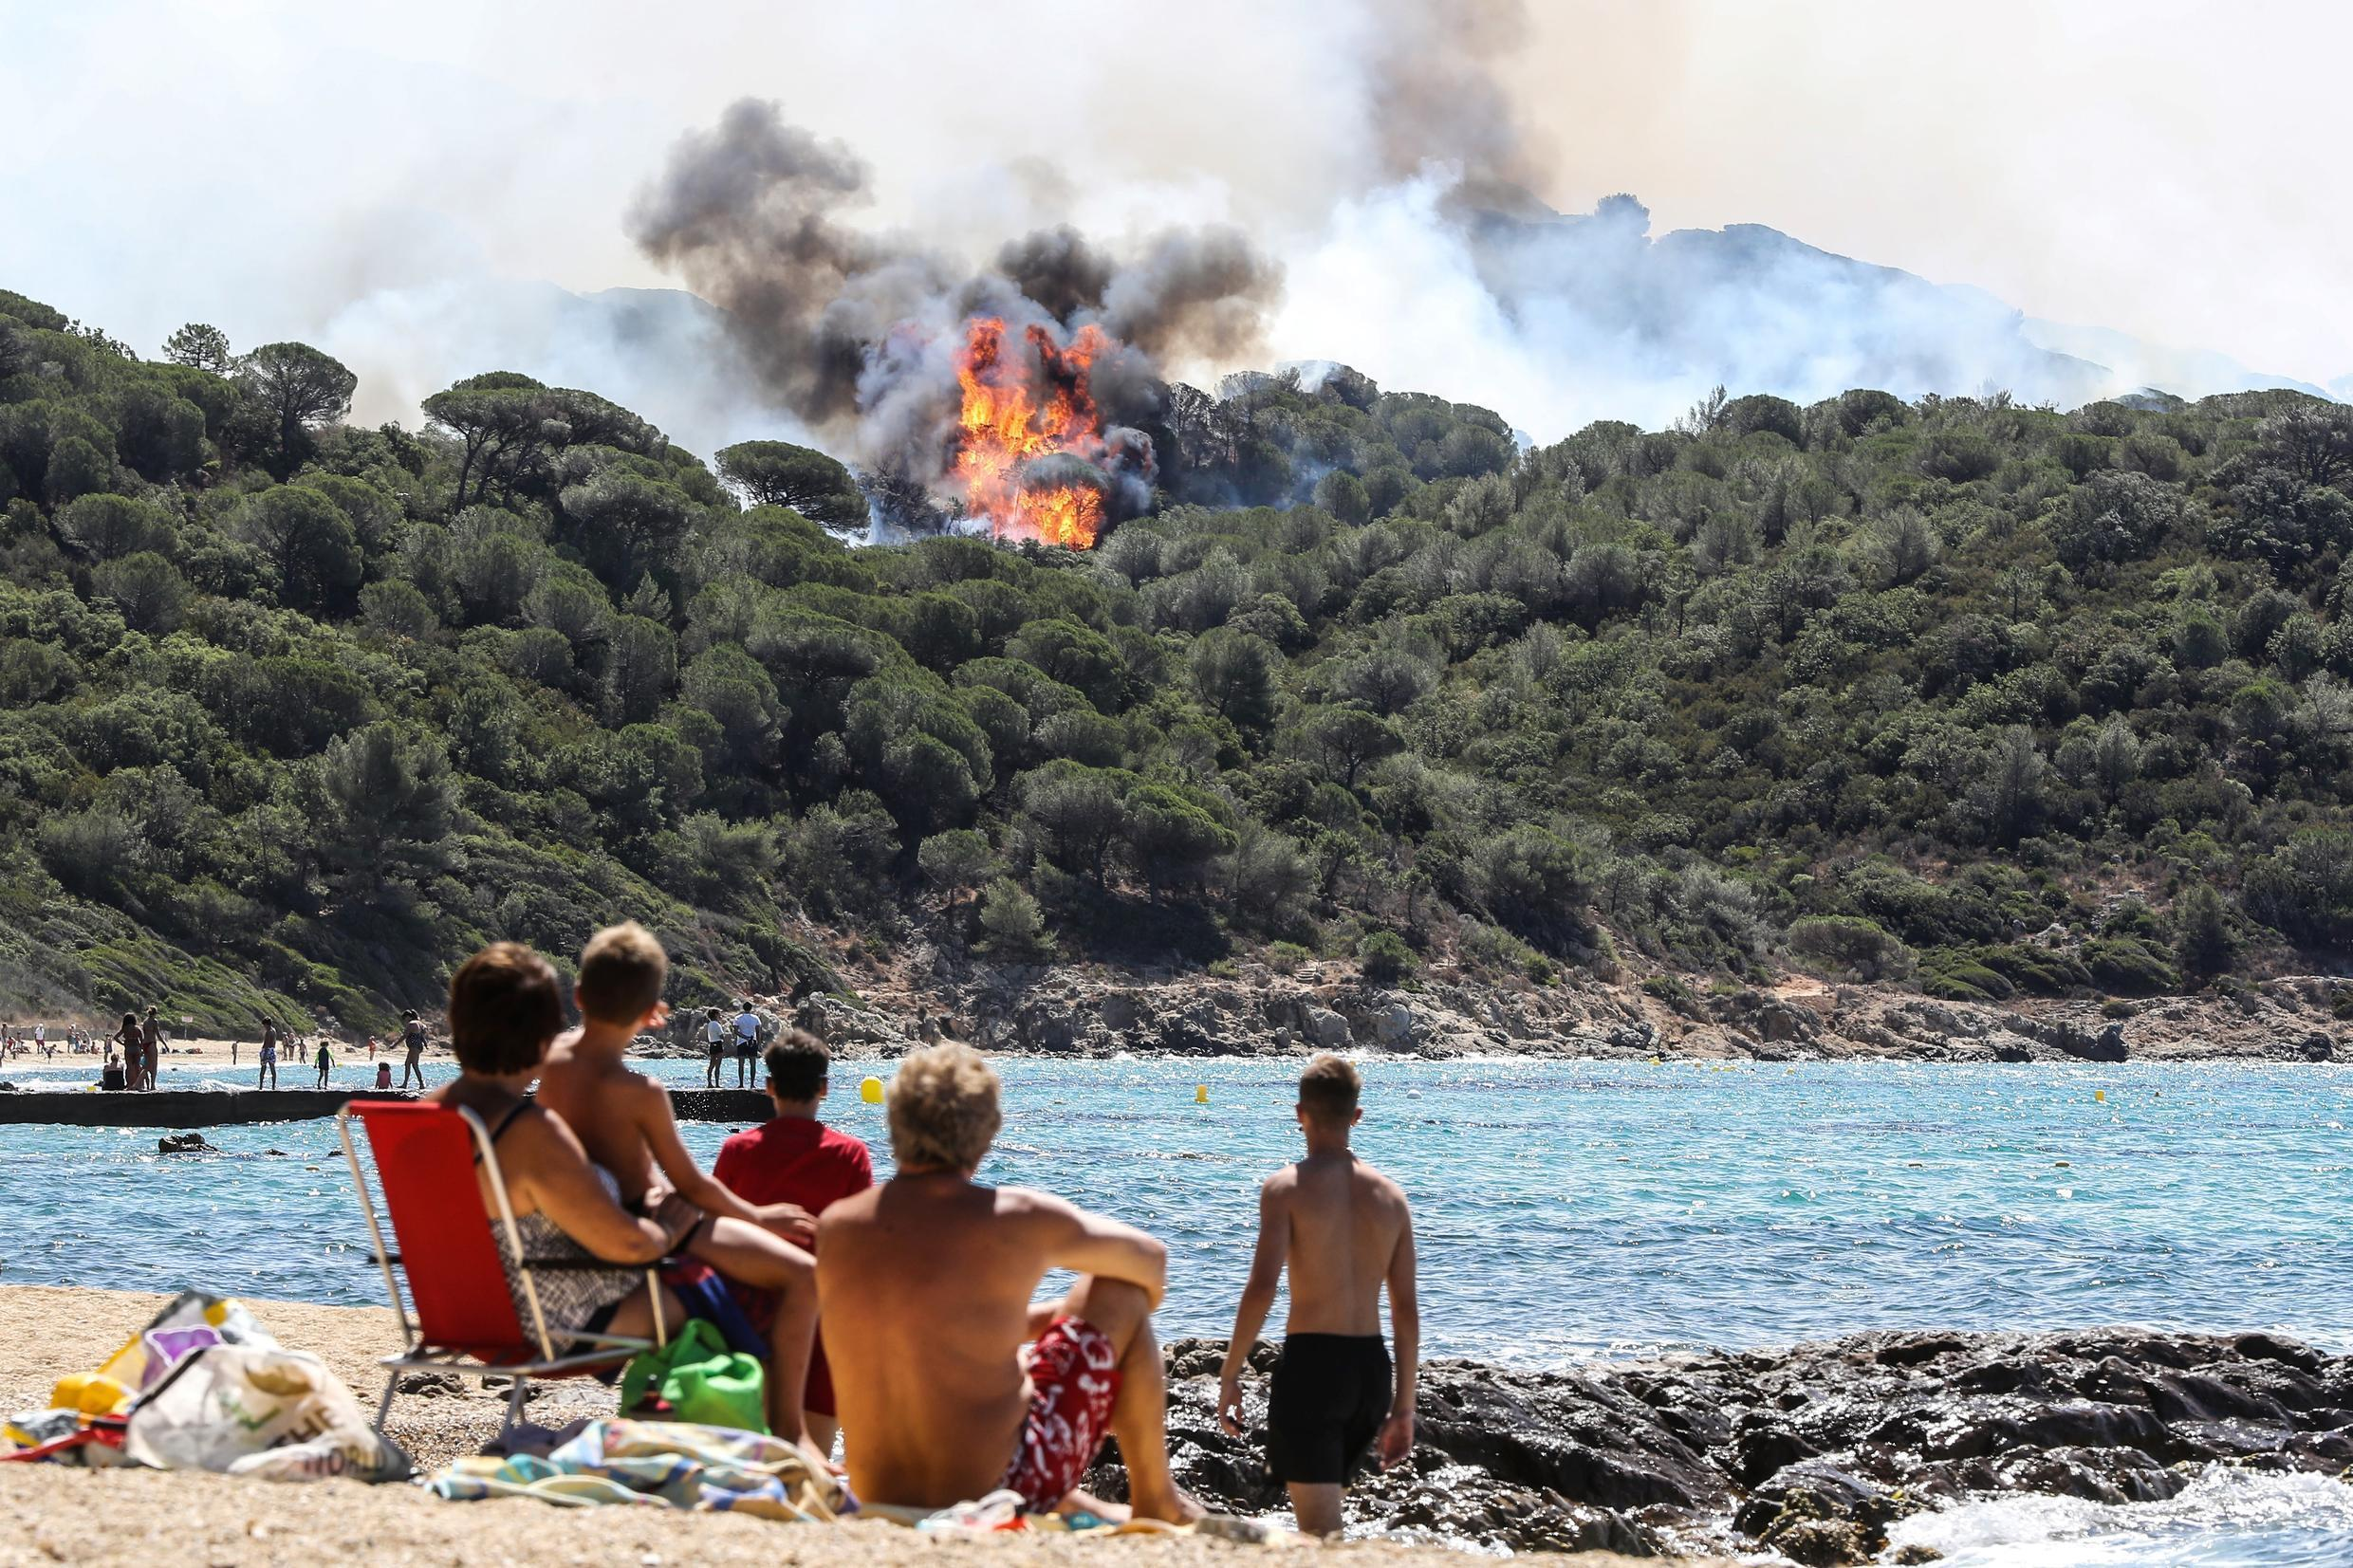 Wildfire raging not far from the holiday resort of Saint-Tropez.